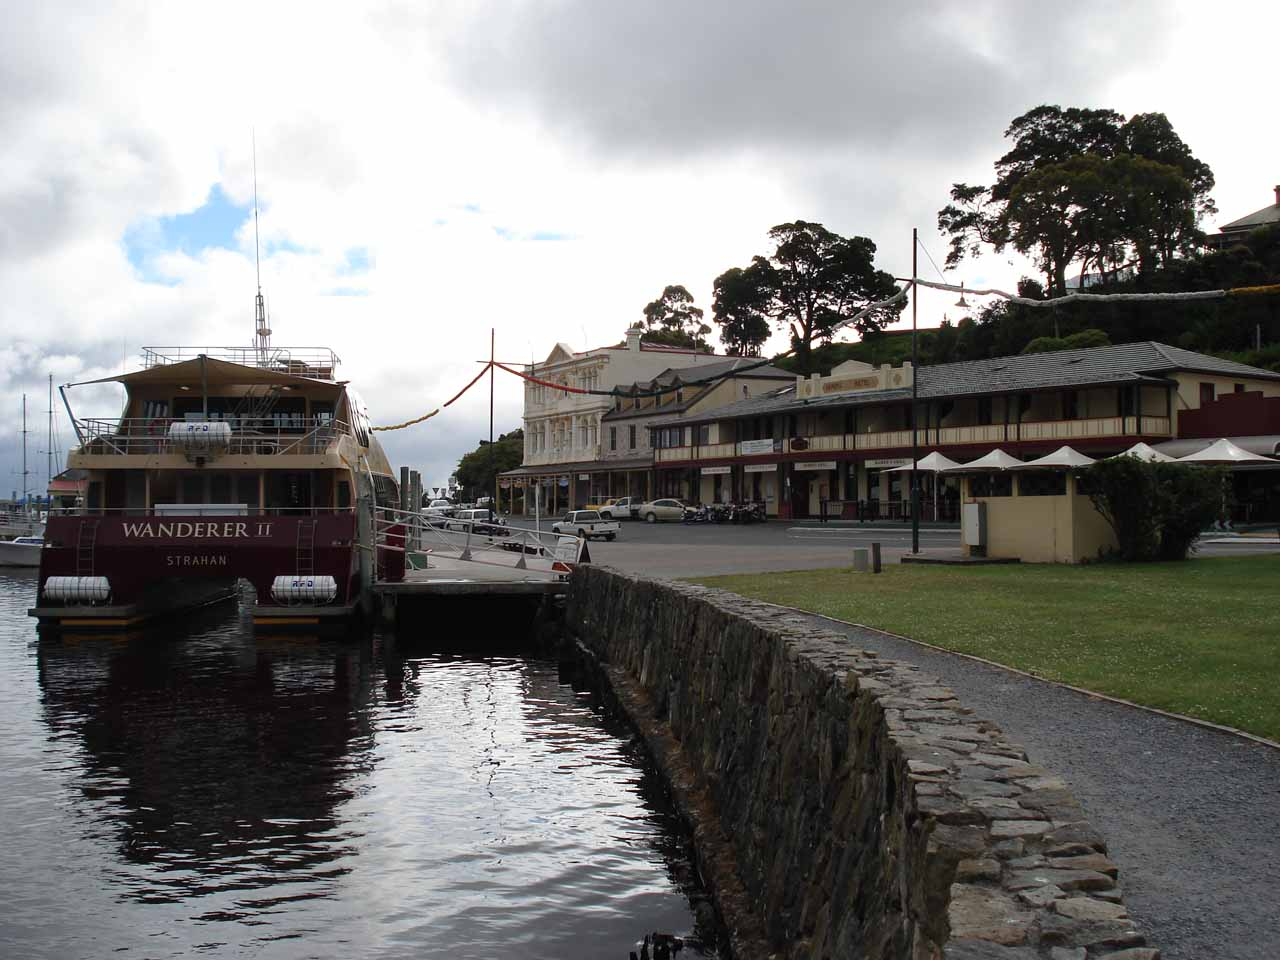 After visiting Hogarth Falls, Julie and I enjoyed a pretty relaxing stroll and fresh seafood at the Esplanade in the town centre of Strahan